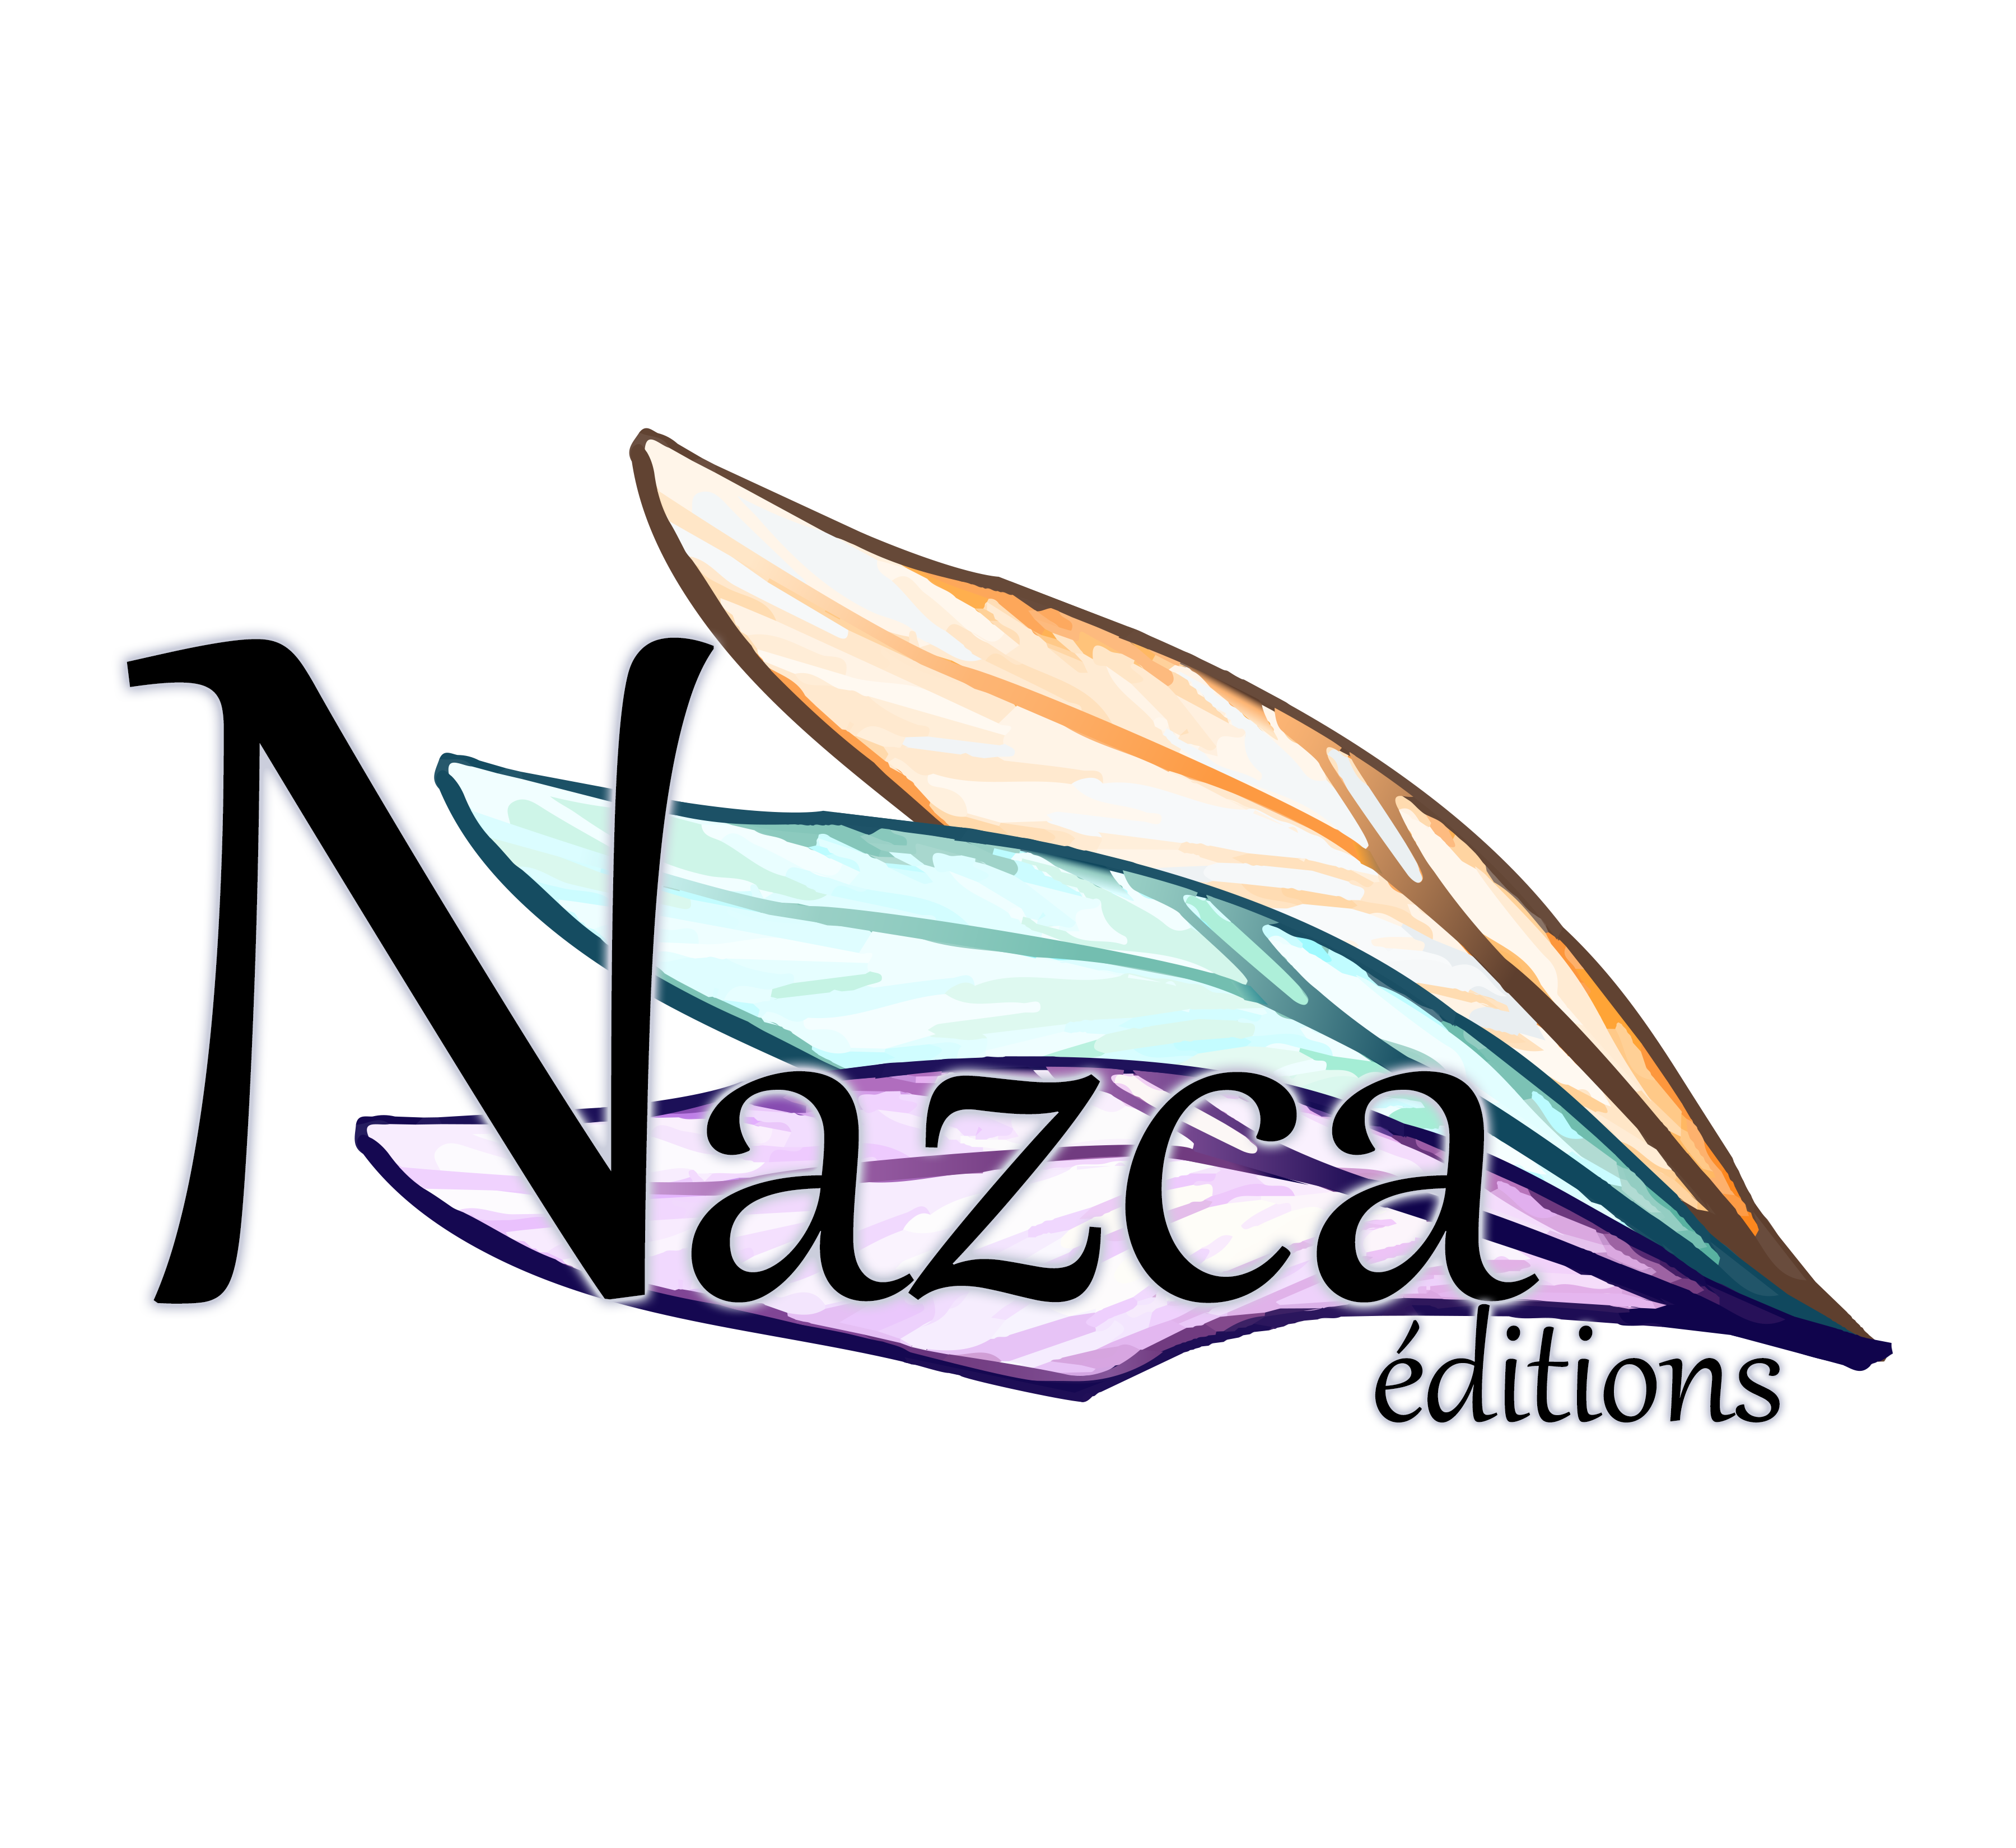 nazca-editions